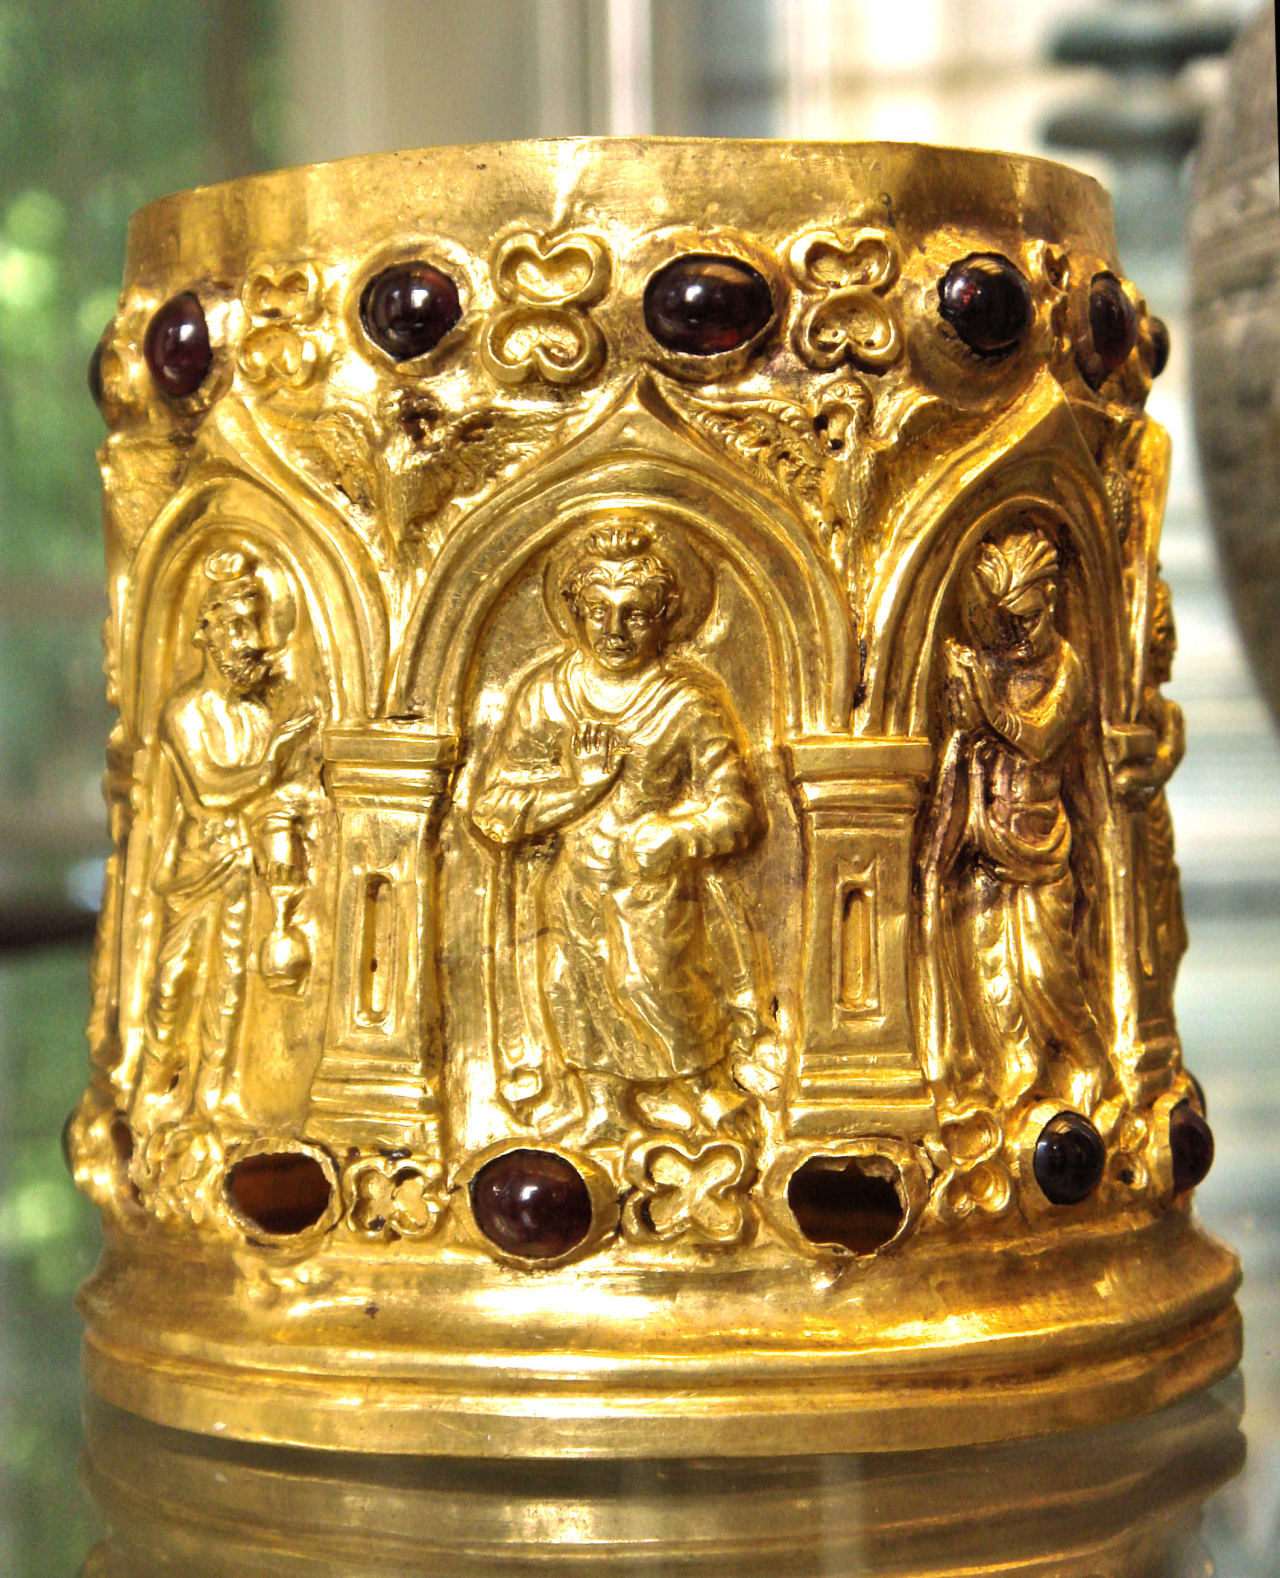 "The Bimaran Reliquary. From stupa 2 at Bimaran, Gandhara (in modern Afghanistan), 1st century AD. The Bimaran Reliquary is a small gold reliquary for Buddhist relics, and shows one of the earliest depictions of Buddha from the north-west region of Gandhara. The inscription stated that the reliquary contained some of the actual ones of the Buddha (the bones, however, are missing). Instead, the relic was deposited with beads of precious stones, small burnt pearls, and four coins. Segment from the British Museum artifact statement:  The arcading round the side consists of eight pointed arches, known as caitya arches, that rest on pilasters. The compartments are divided principally into two sets of three niches. Each has a Buddha in the centre flanked by two similar deities in profile who face the Buddha.  The remaining two compartments show a figure frontally with his hands held together in a prayerful gesture of reverence, anjali-mudra. In the spandrels between the arches are eagles with outspread wings and heads turned so that they face each other. The entire frieze is sandwiched between registers of garnets that alternate with a four-lobed floral motif.  The Bimaran casket was kept in a steatite box, with the inscriptions stating that it contained some relics of the Buddha. The inscriptions on the box read: From the main body of the container:  ""Shivaraksita mumjavamdaputrasa danamuhe niyadide bhagavata sharirehi sarvabudhana puyae""  ""Sacred gift of Shivaraksita, son of Munjavamda; presented for Lord's relics, in honour of all Buddhas""  And from the lid of the container:  ""Shivaraksita mumjavamdaputrasa danamuhe bhagavata sharirehi""  ""Gift of Shivaraksita, son of Munjavamda; presented for Lord's relics""  This reliquary is a crucial object for the history of Buddhism, the development of the Buddha image on Buddhist art, and the best preserved example of early Indian goldsmithing. Courtesy & currently located at the British Museum, London. Photo taken by World Imaging"